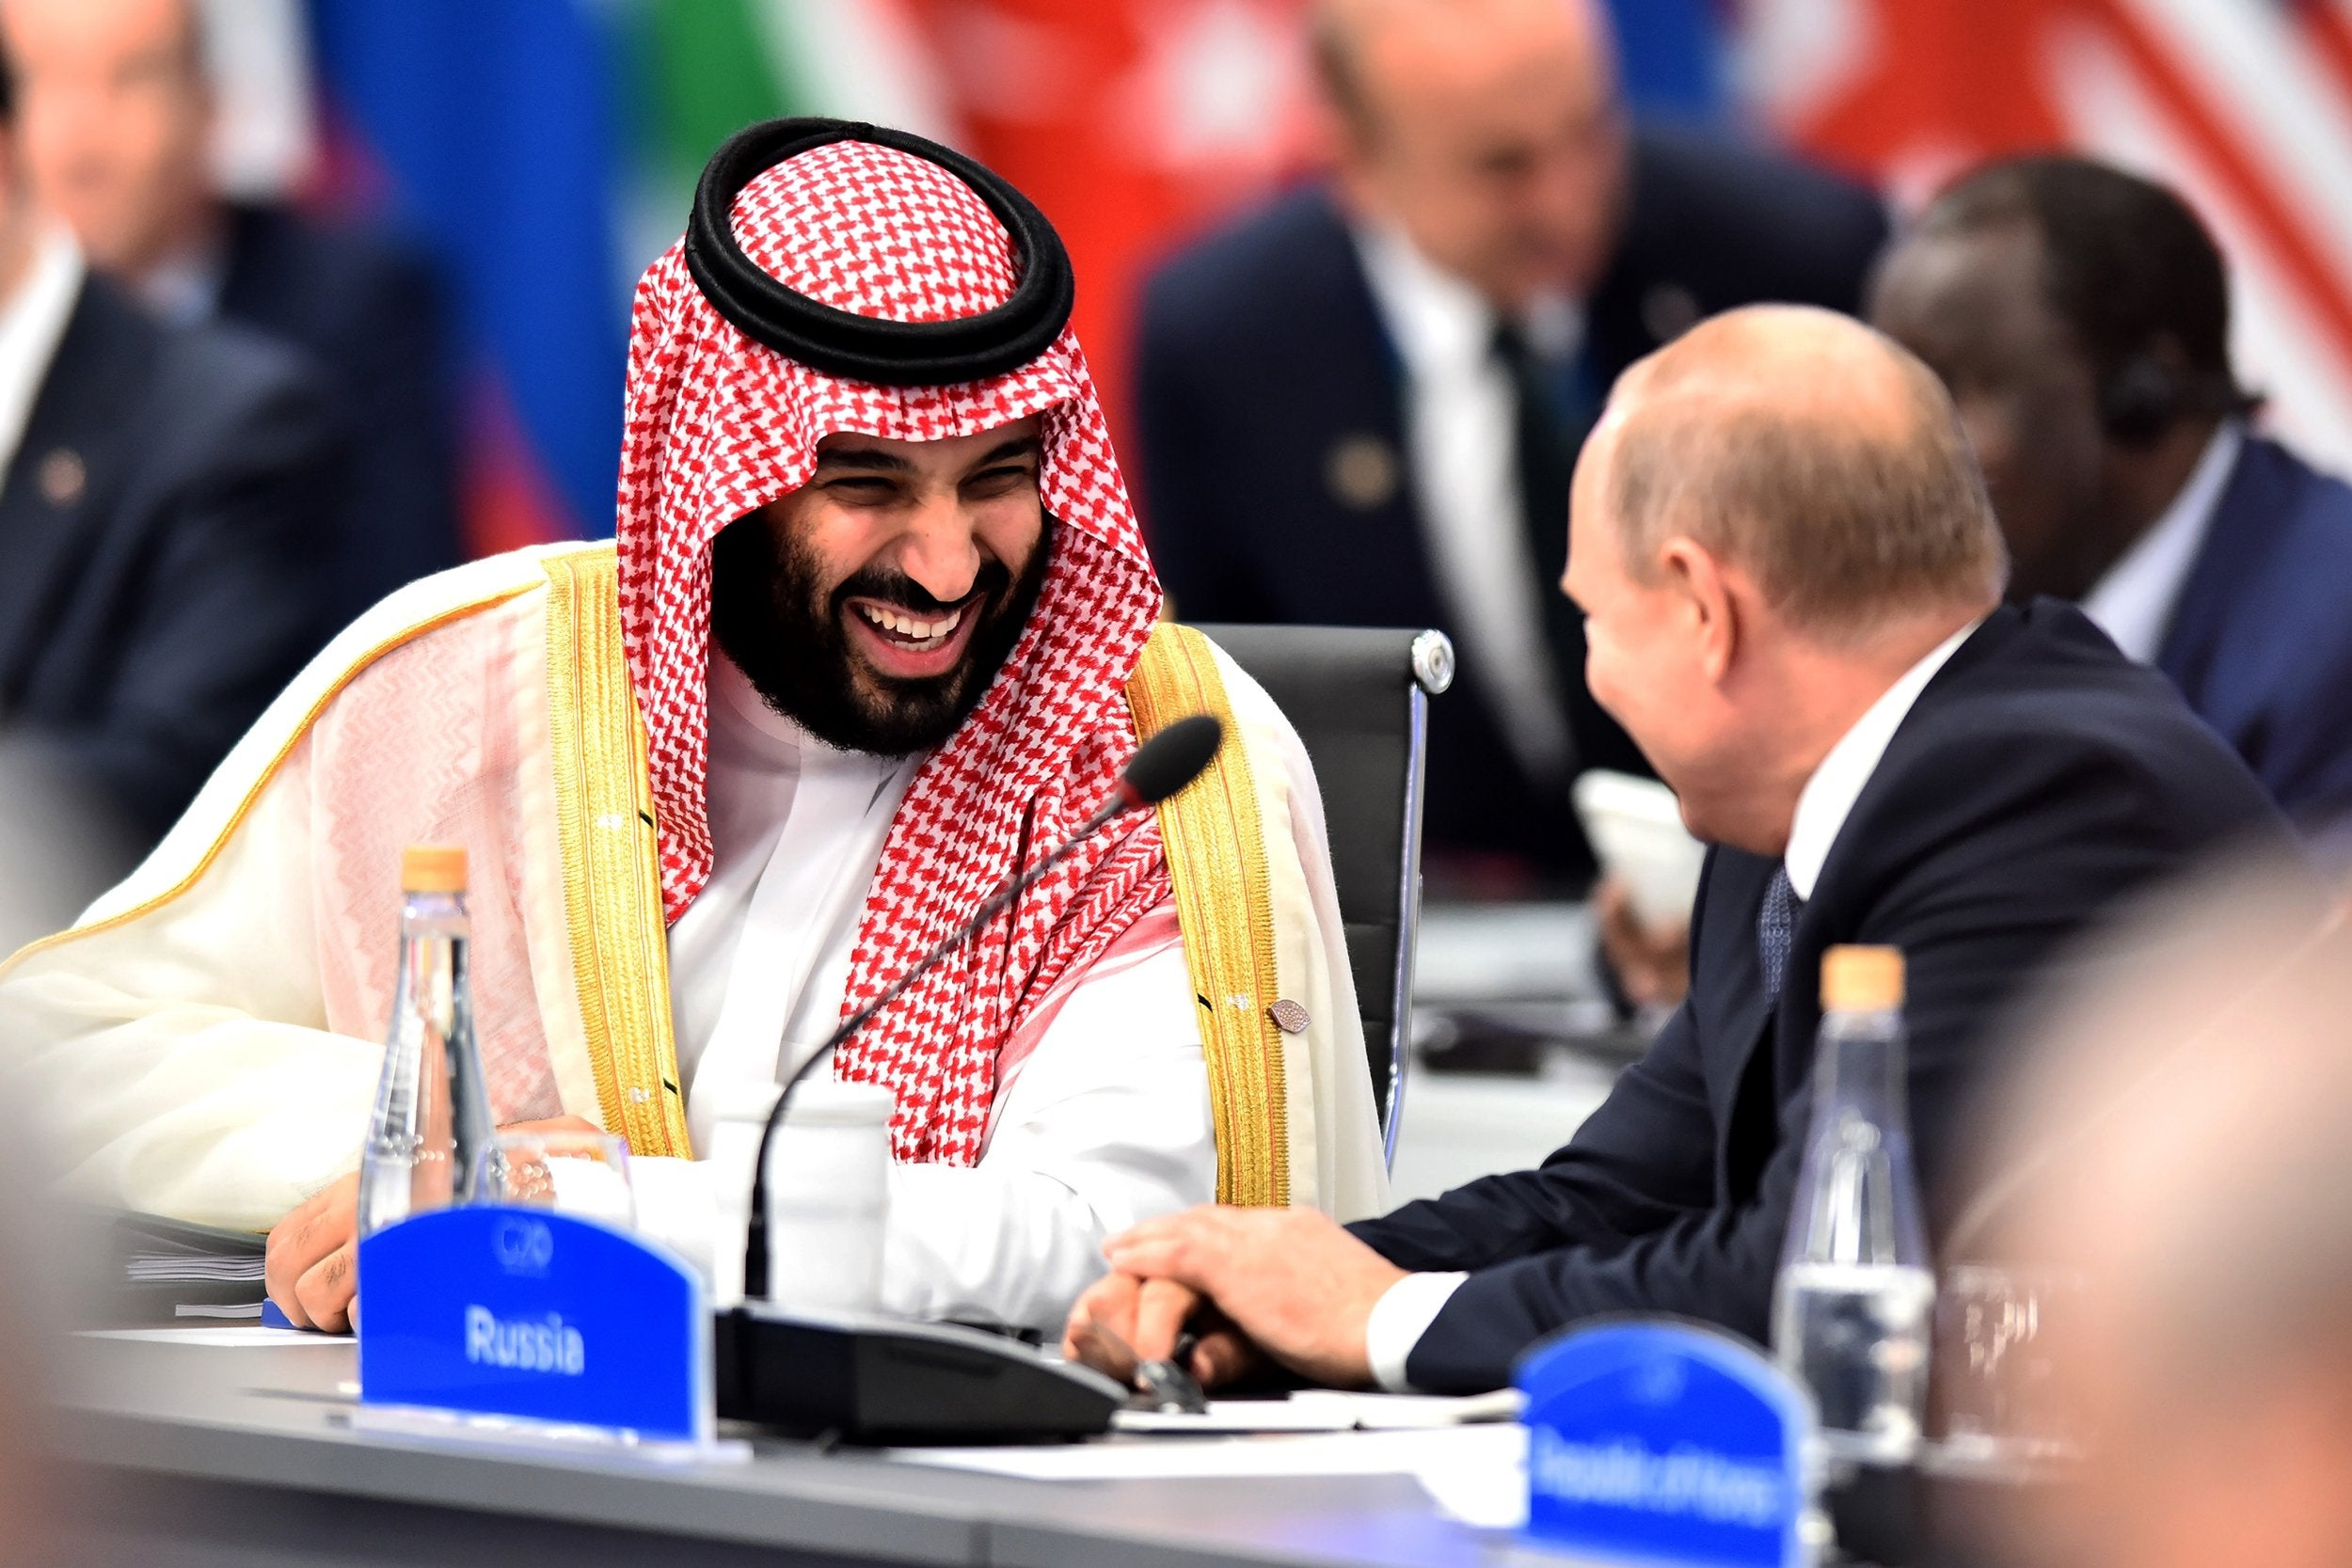 Mohammed bin Salman: Saudi crown prince met with laughter and confrontations at G20 summit over Khashoggi murder